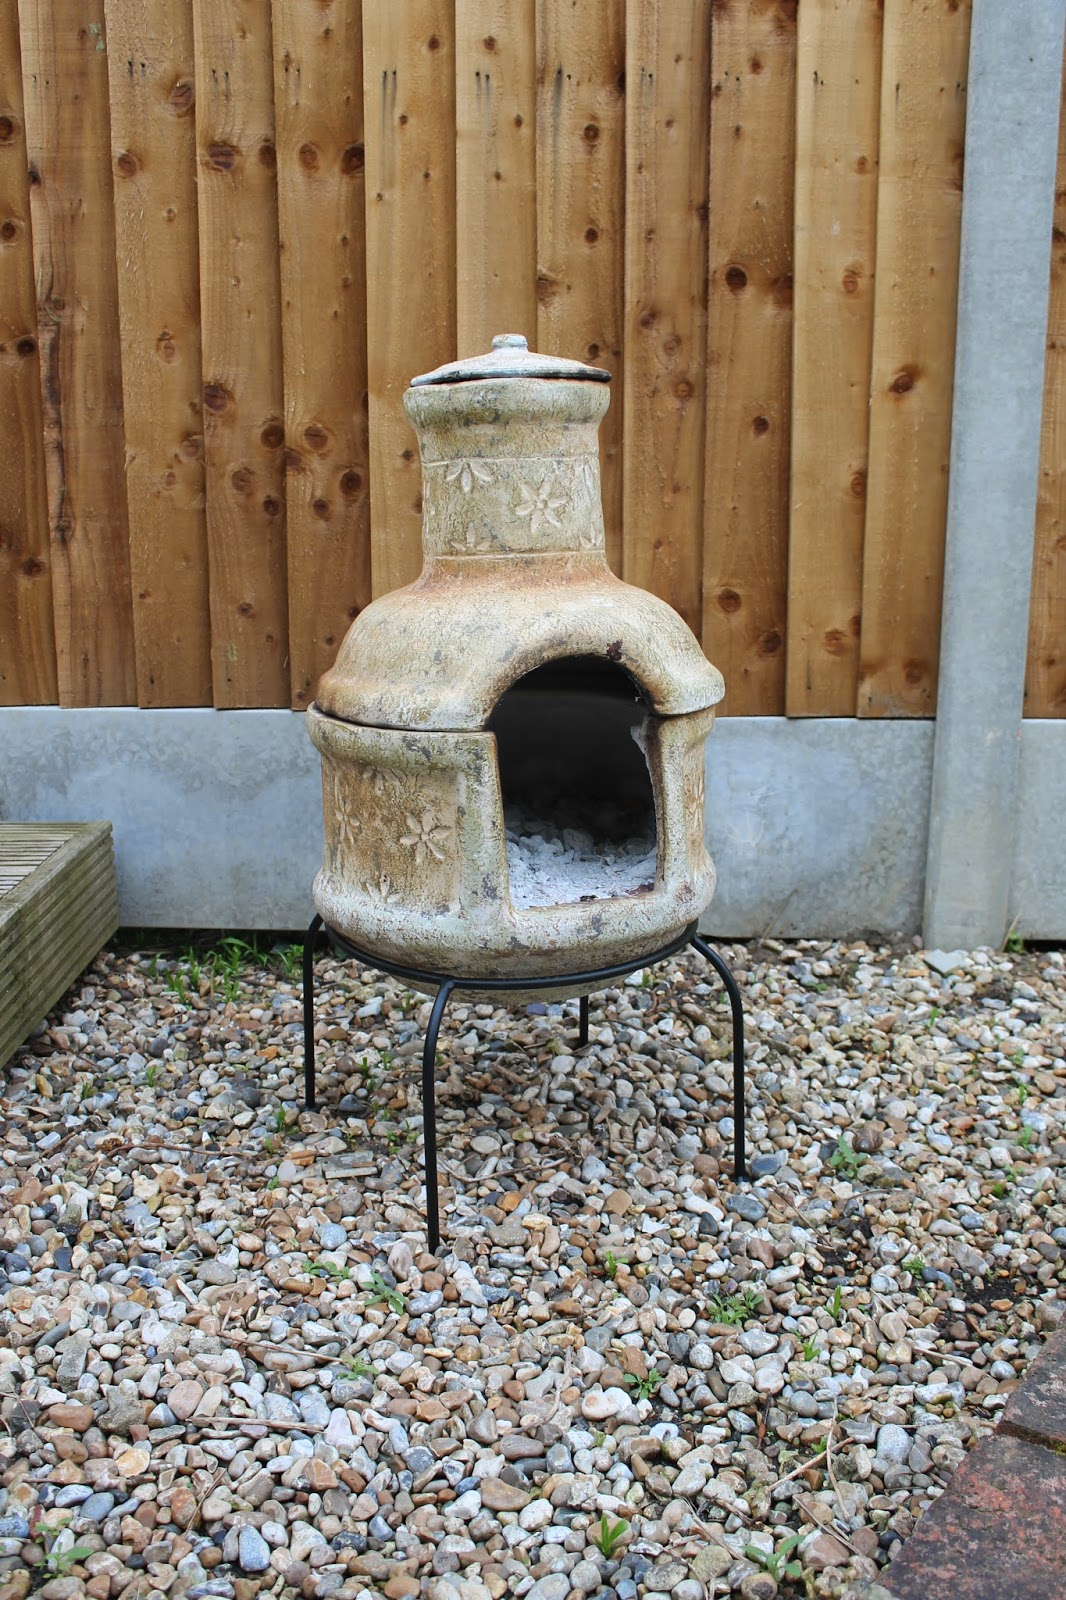 blog review, culture vulture direct, star chimnea